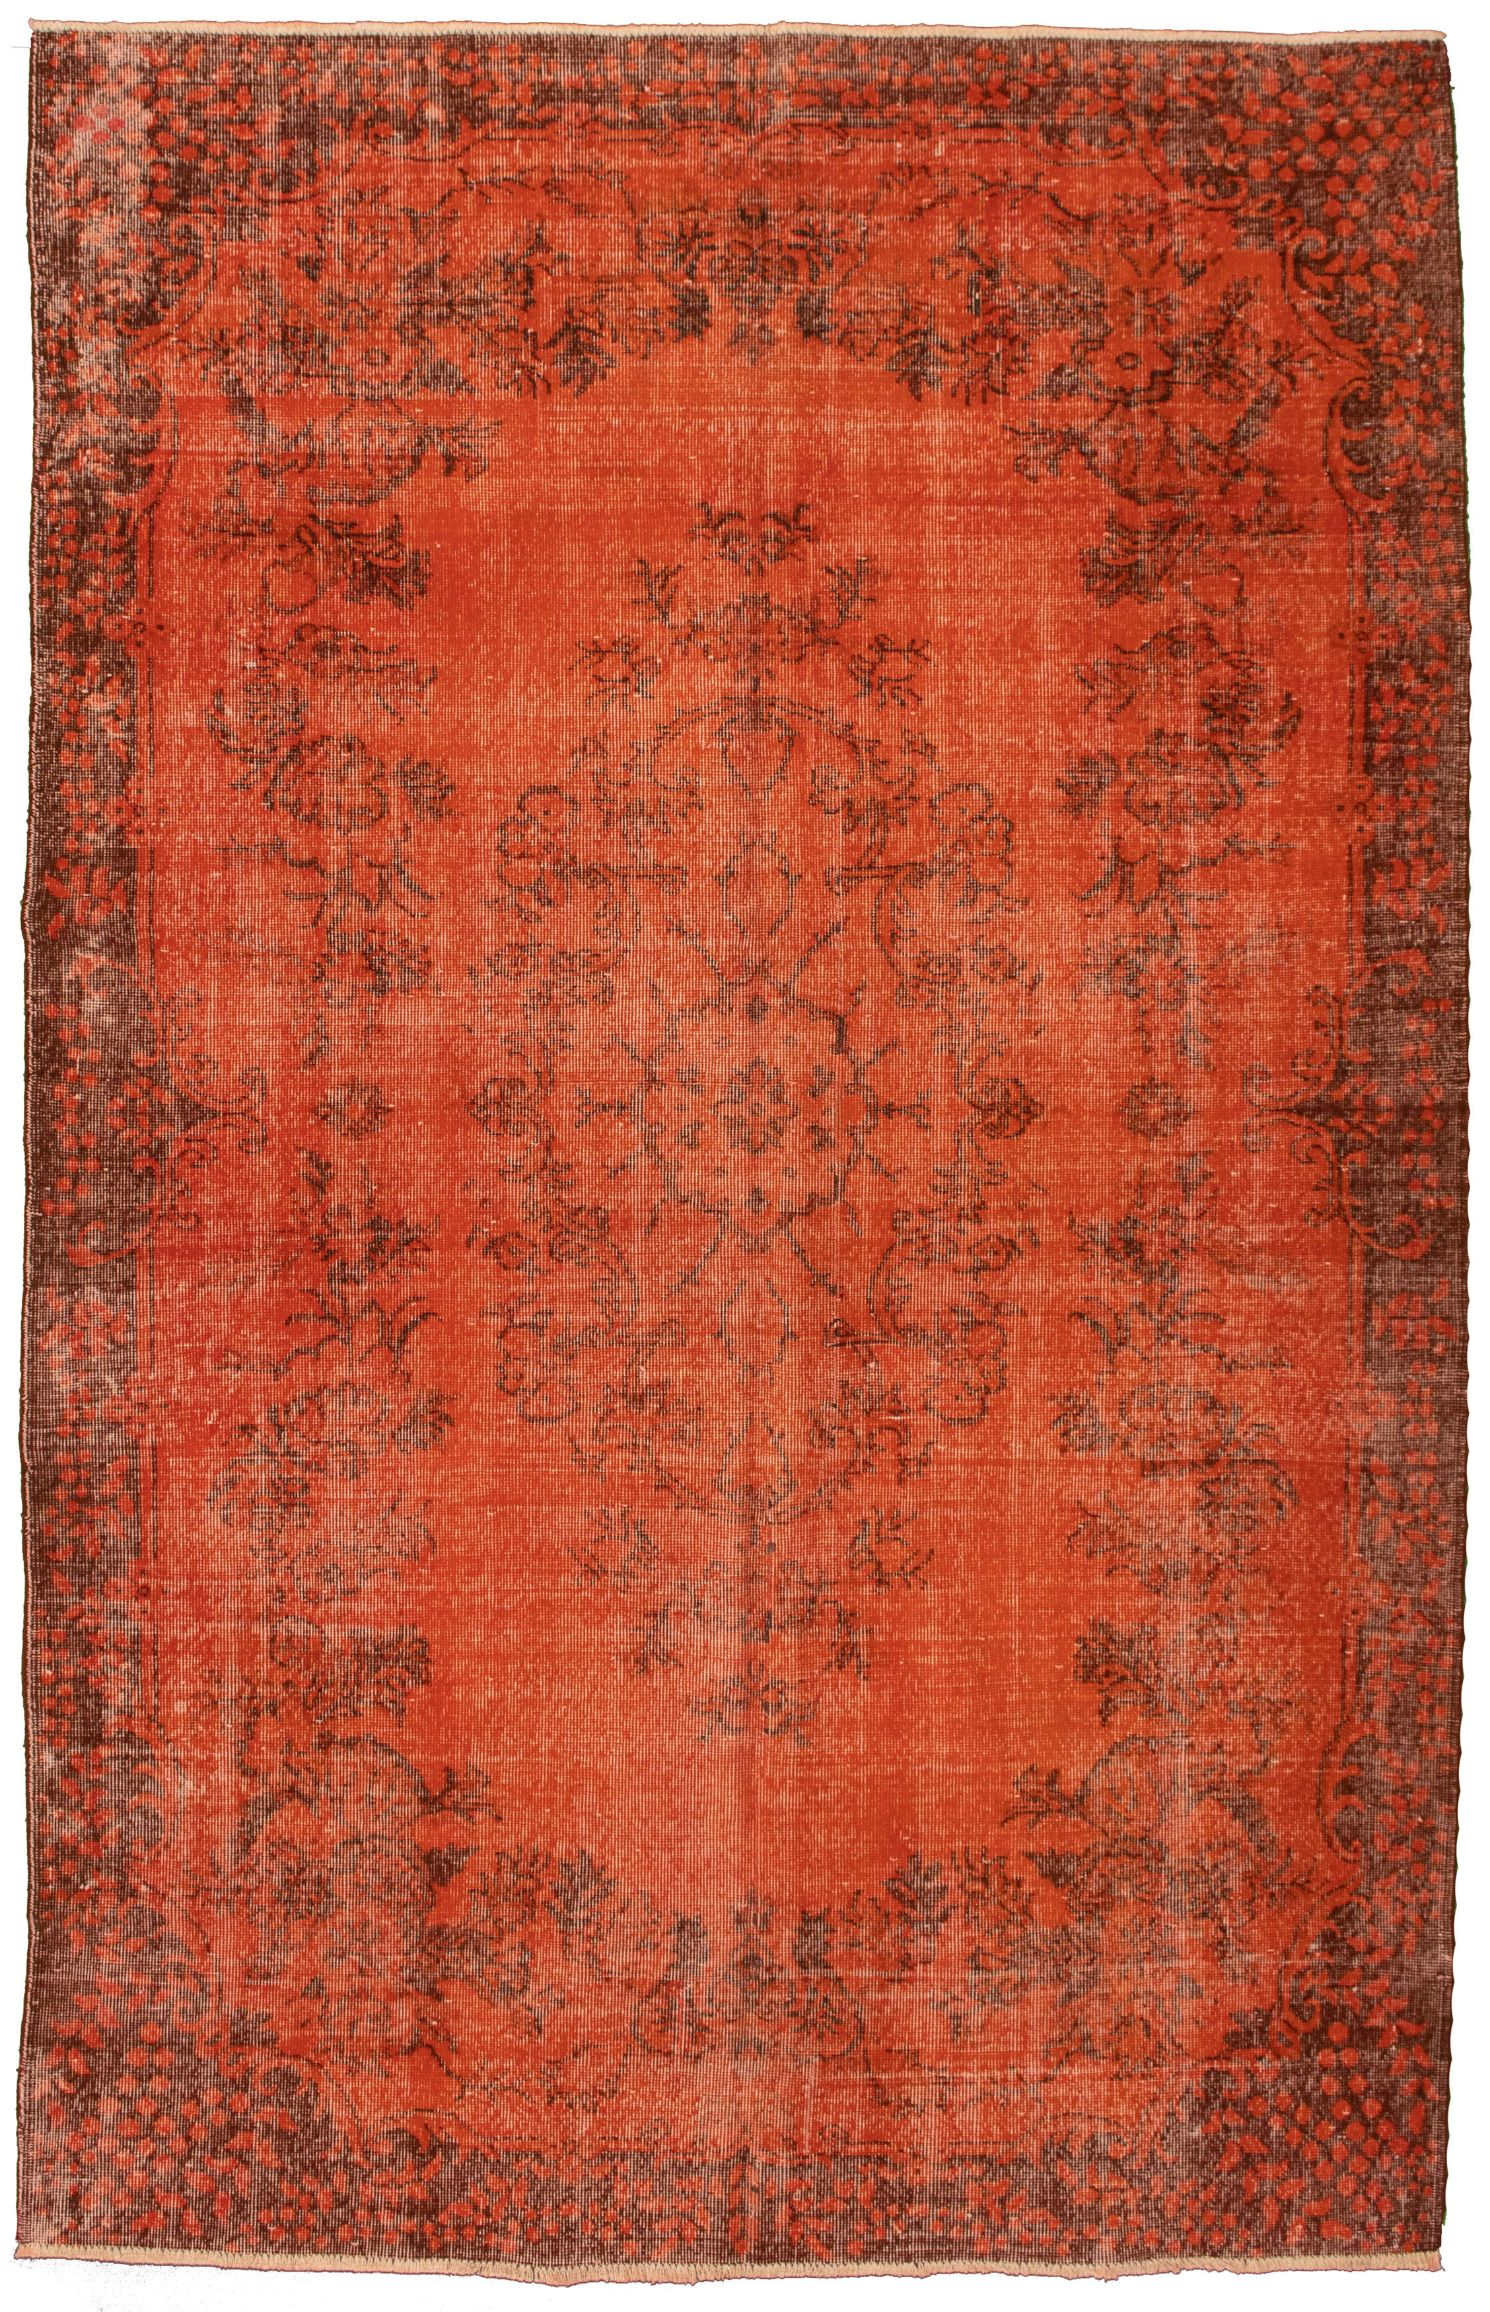 """Hand-knotted Color Transition Burnt Orange Wool Rug 6'8"""" x 10'5"""" Size: 6'8"""" x 10'5"""""""